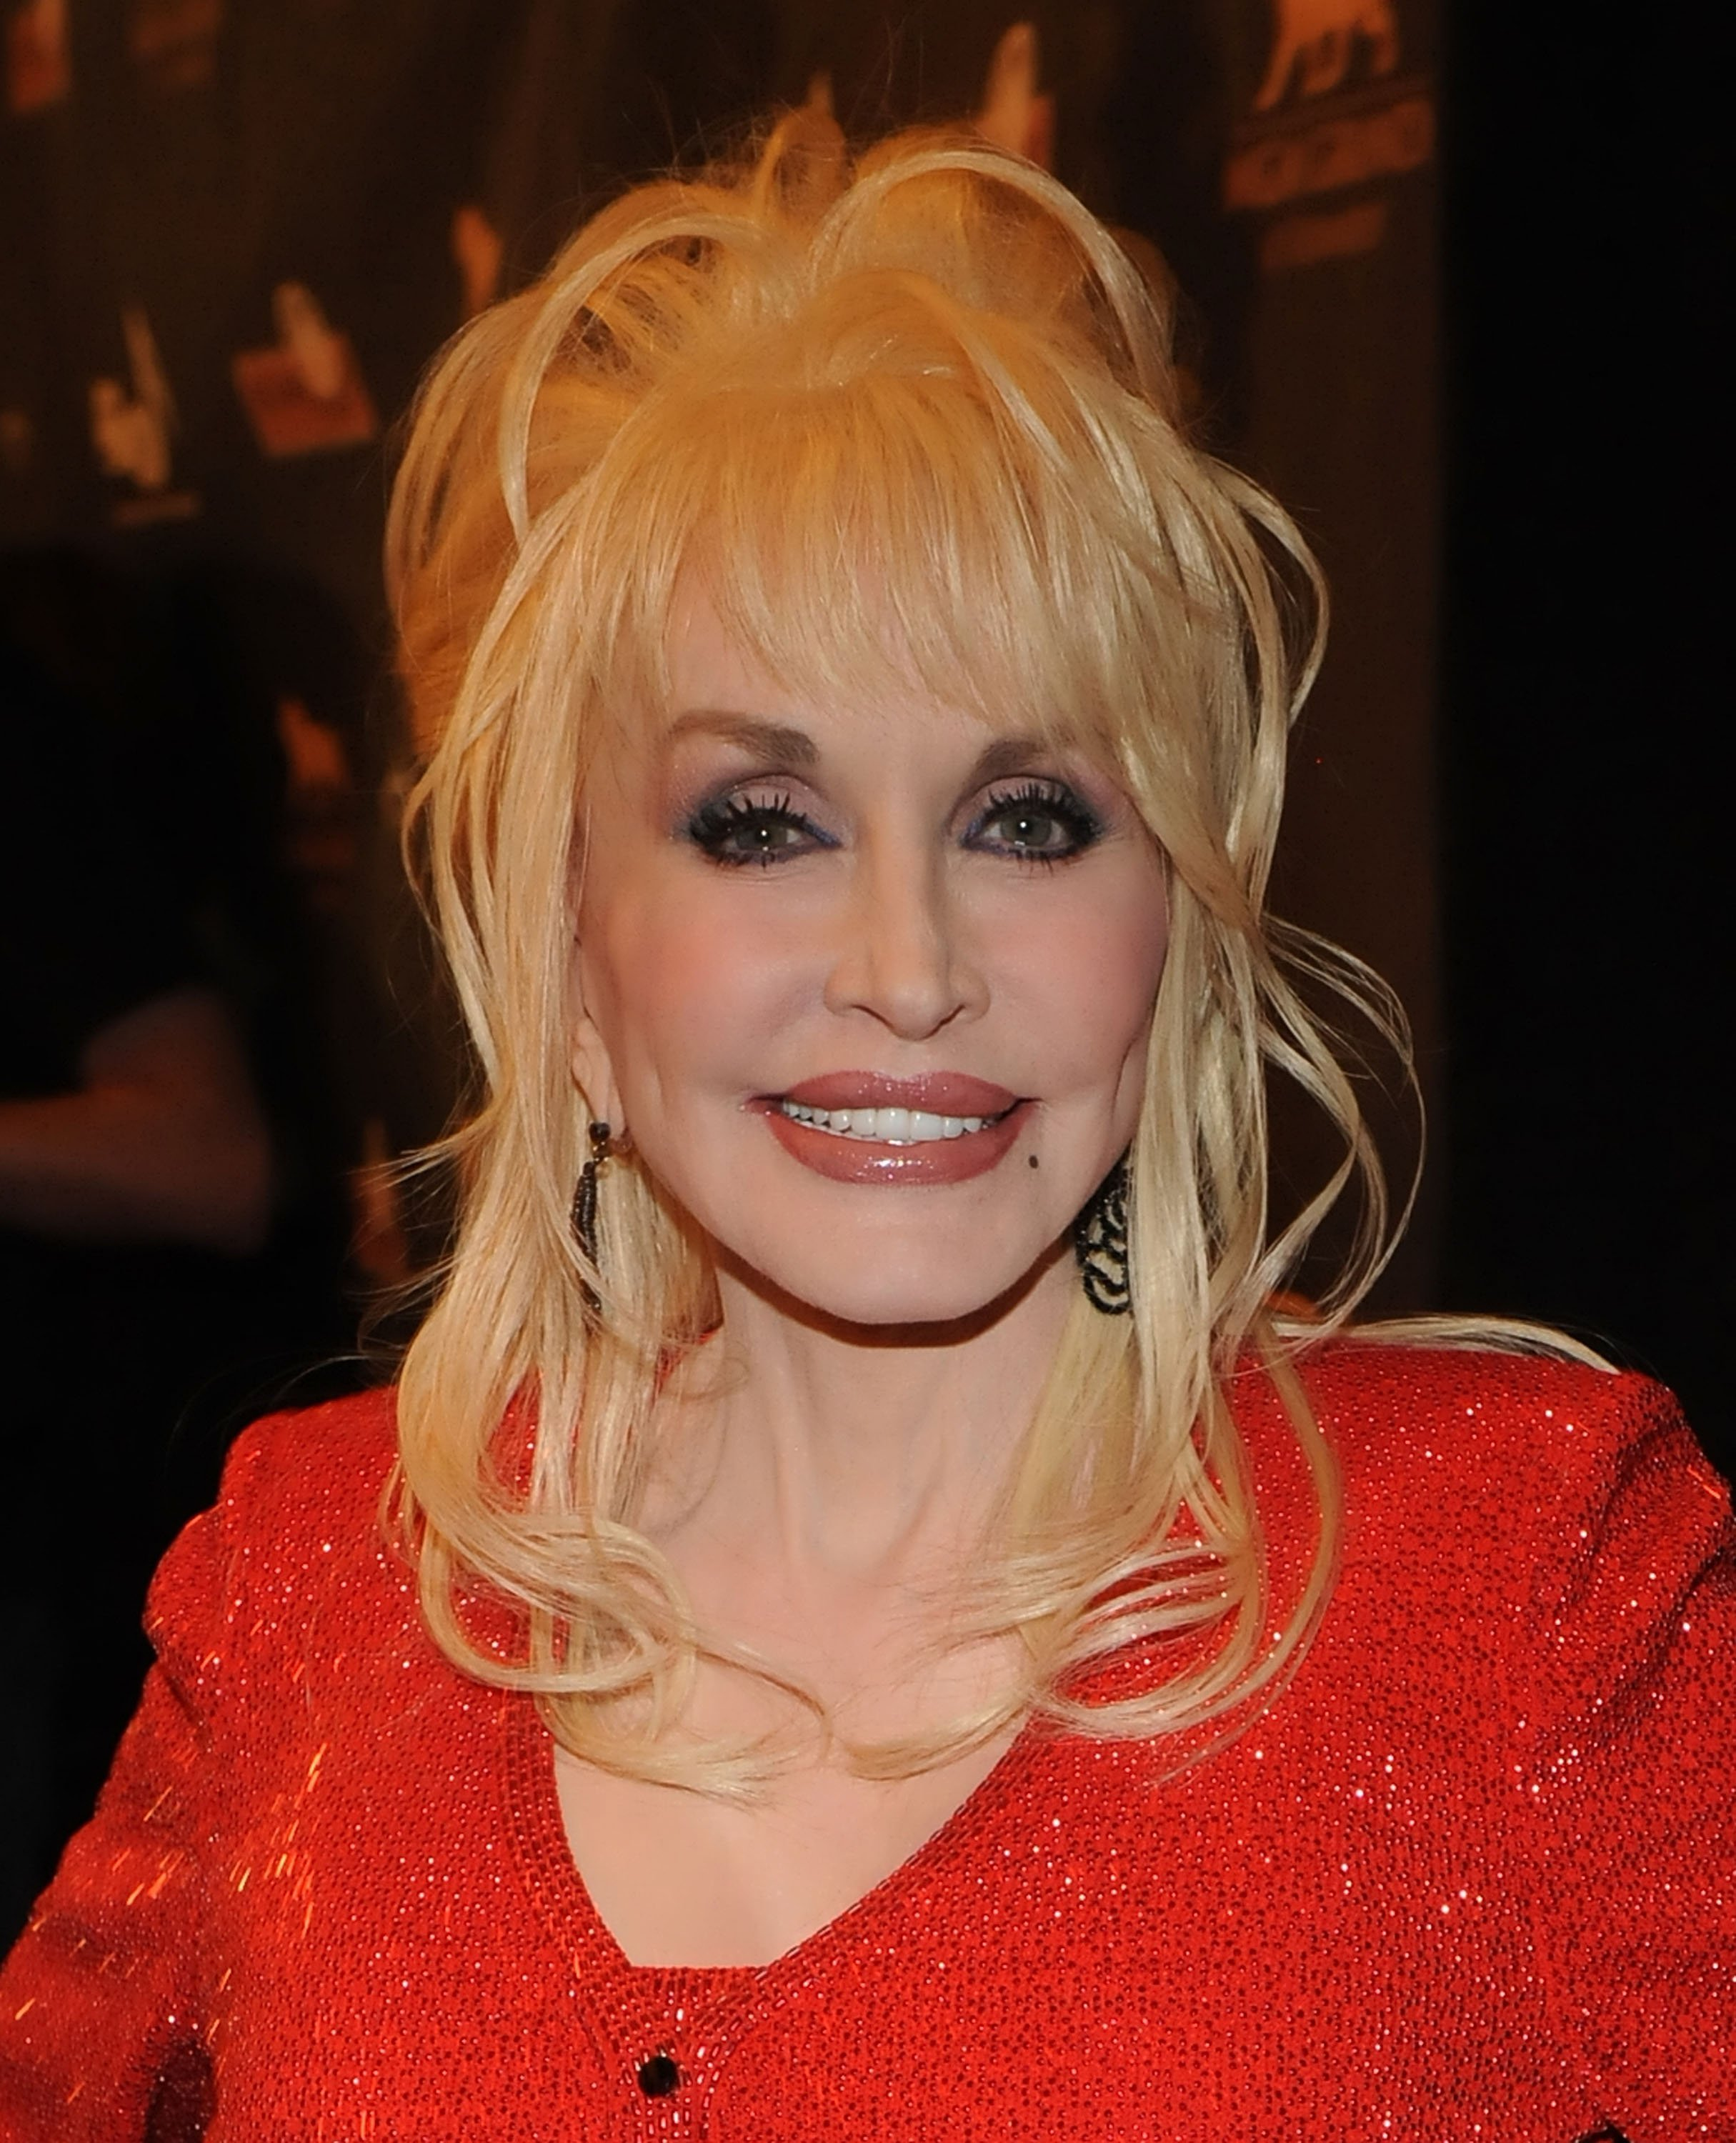 Dolly Parton attending an awards show in 2010. | Photo: Getty Images